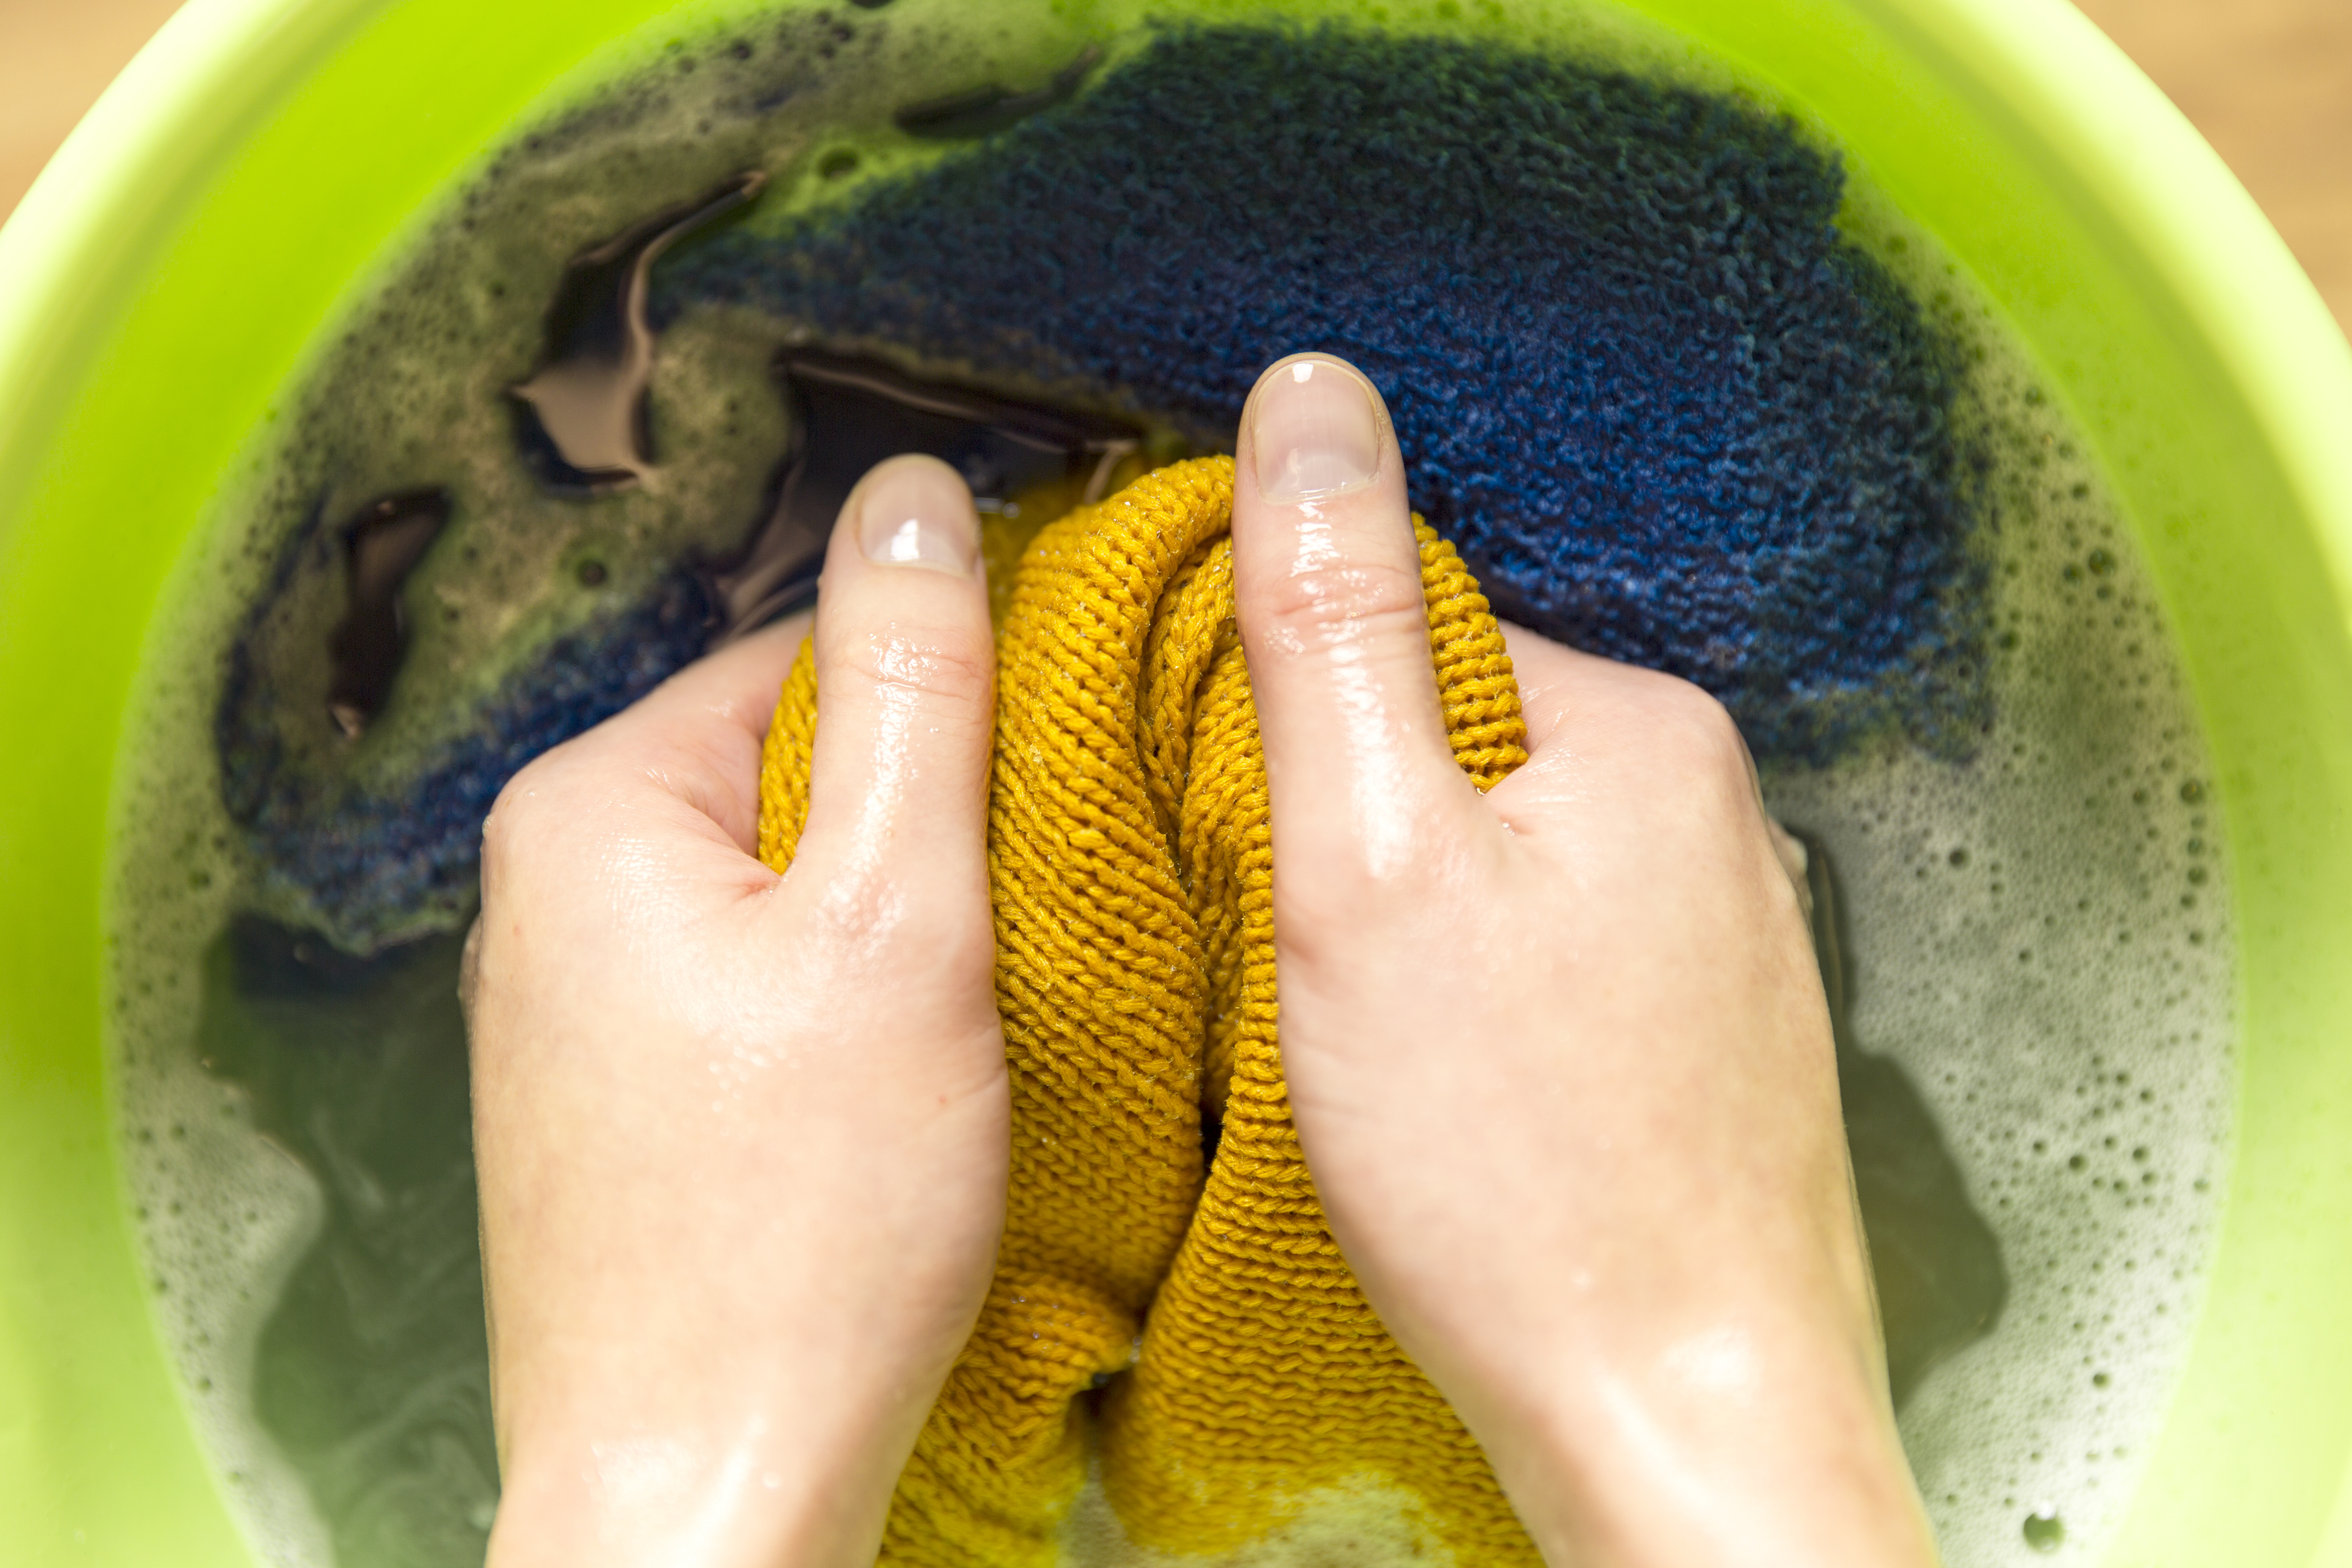 How To Remove Grease Stains From Laundry After Drying Home Guides